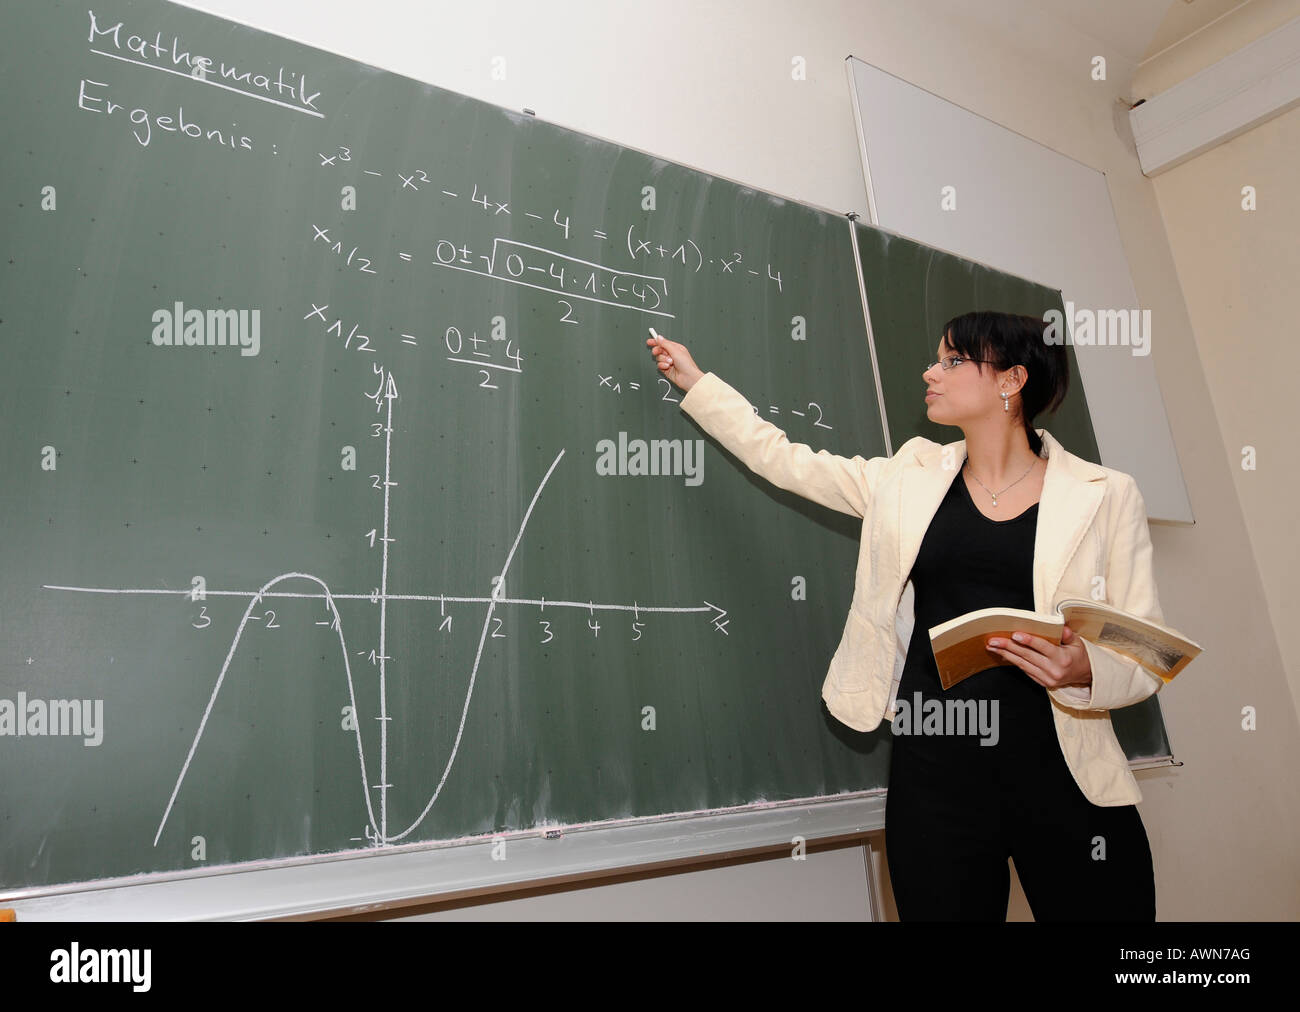 Teaching Maths Young Female Teacher Teaching Maths Stock Photo 16620135 Alamy